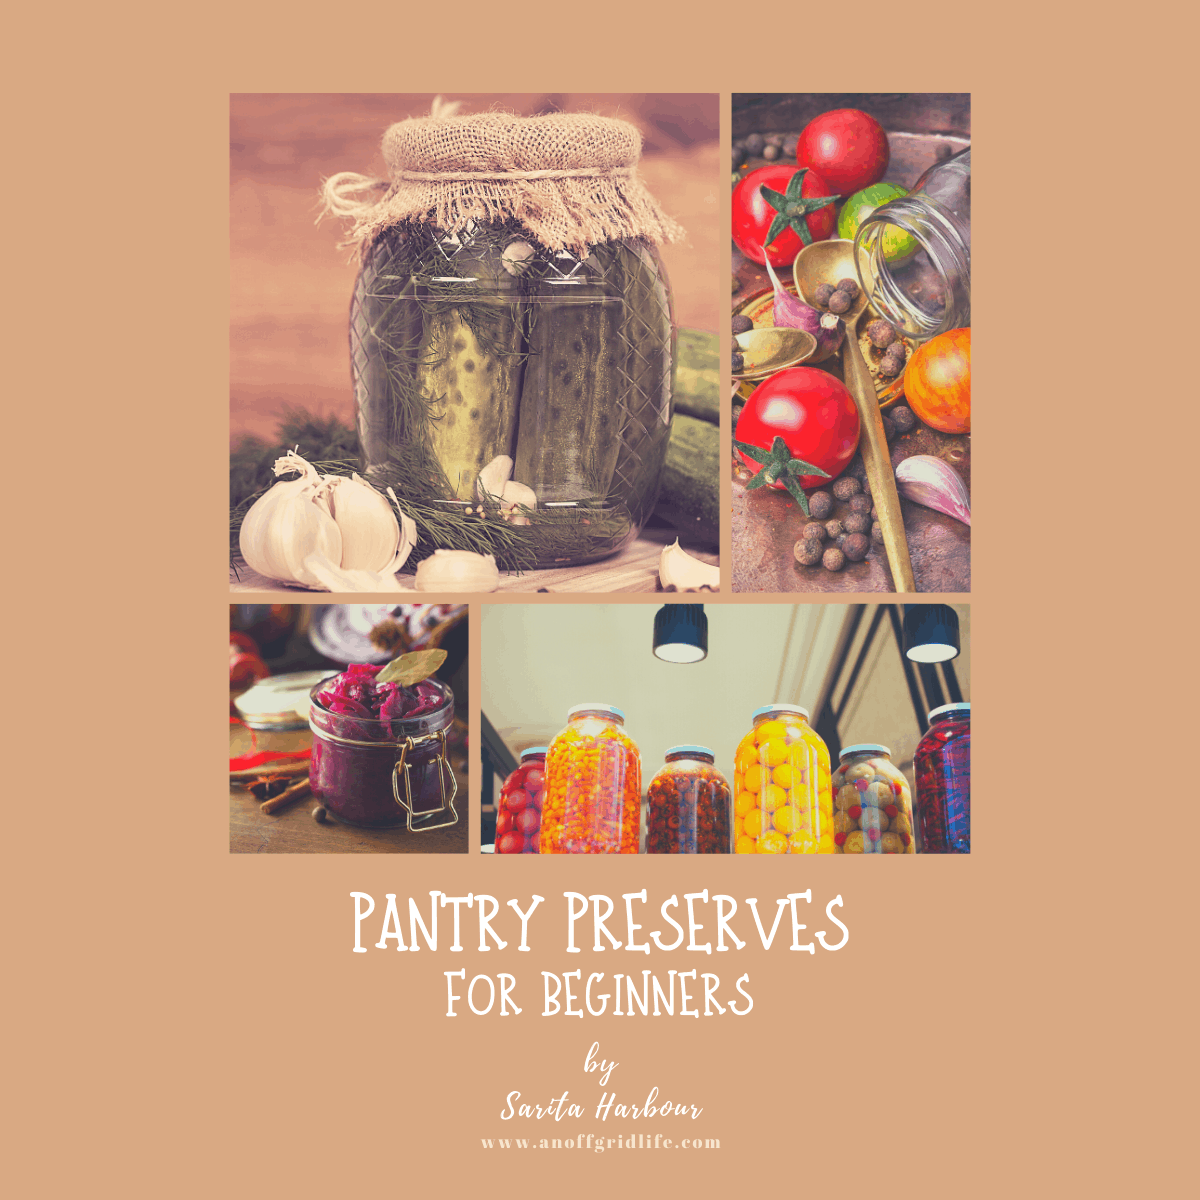 Pantry Preserves for Beginners